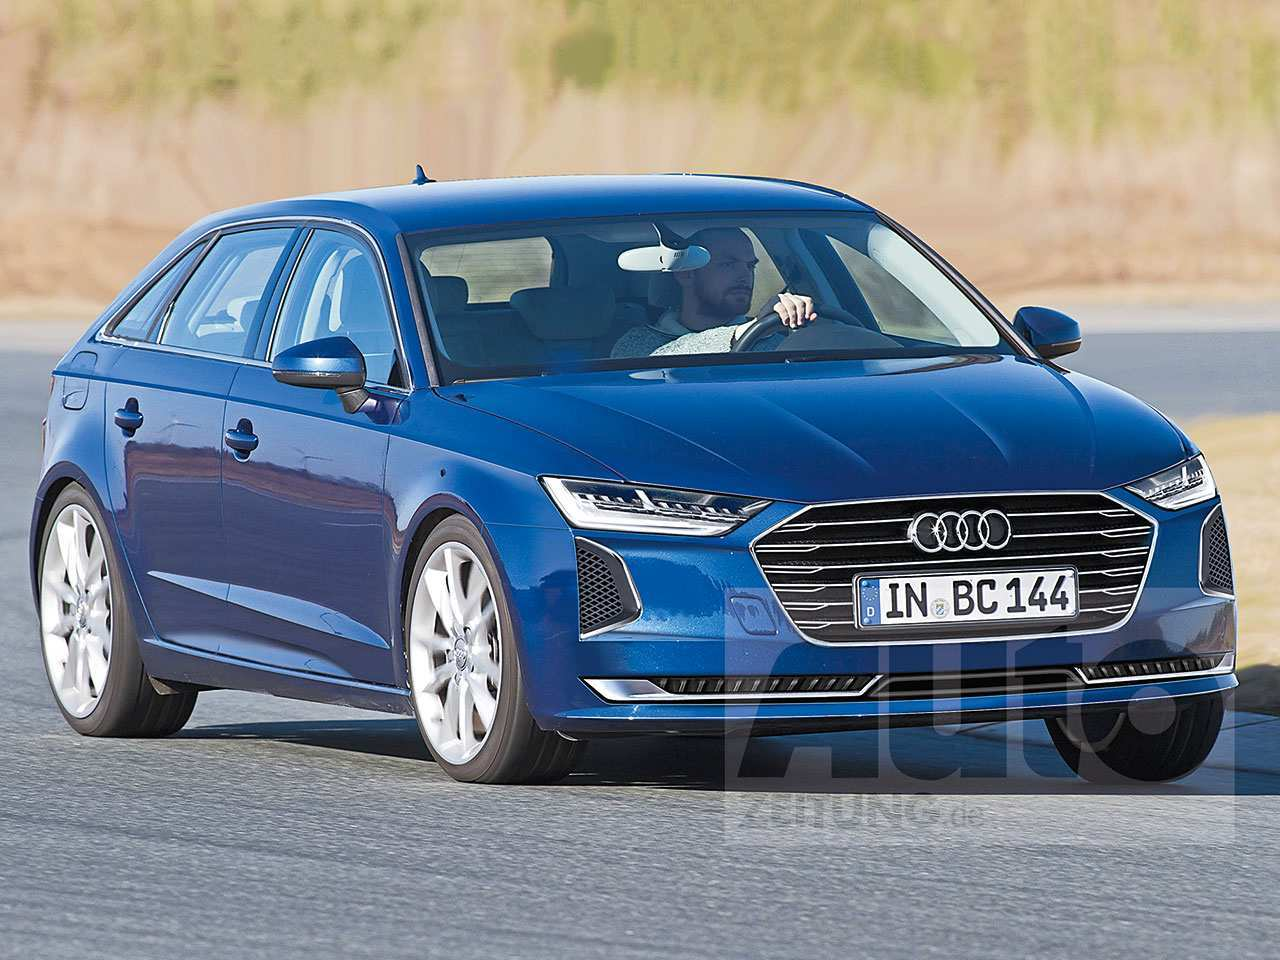 26 New Audi A5 2020 Concept by Audi A5 2020